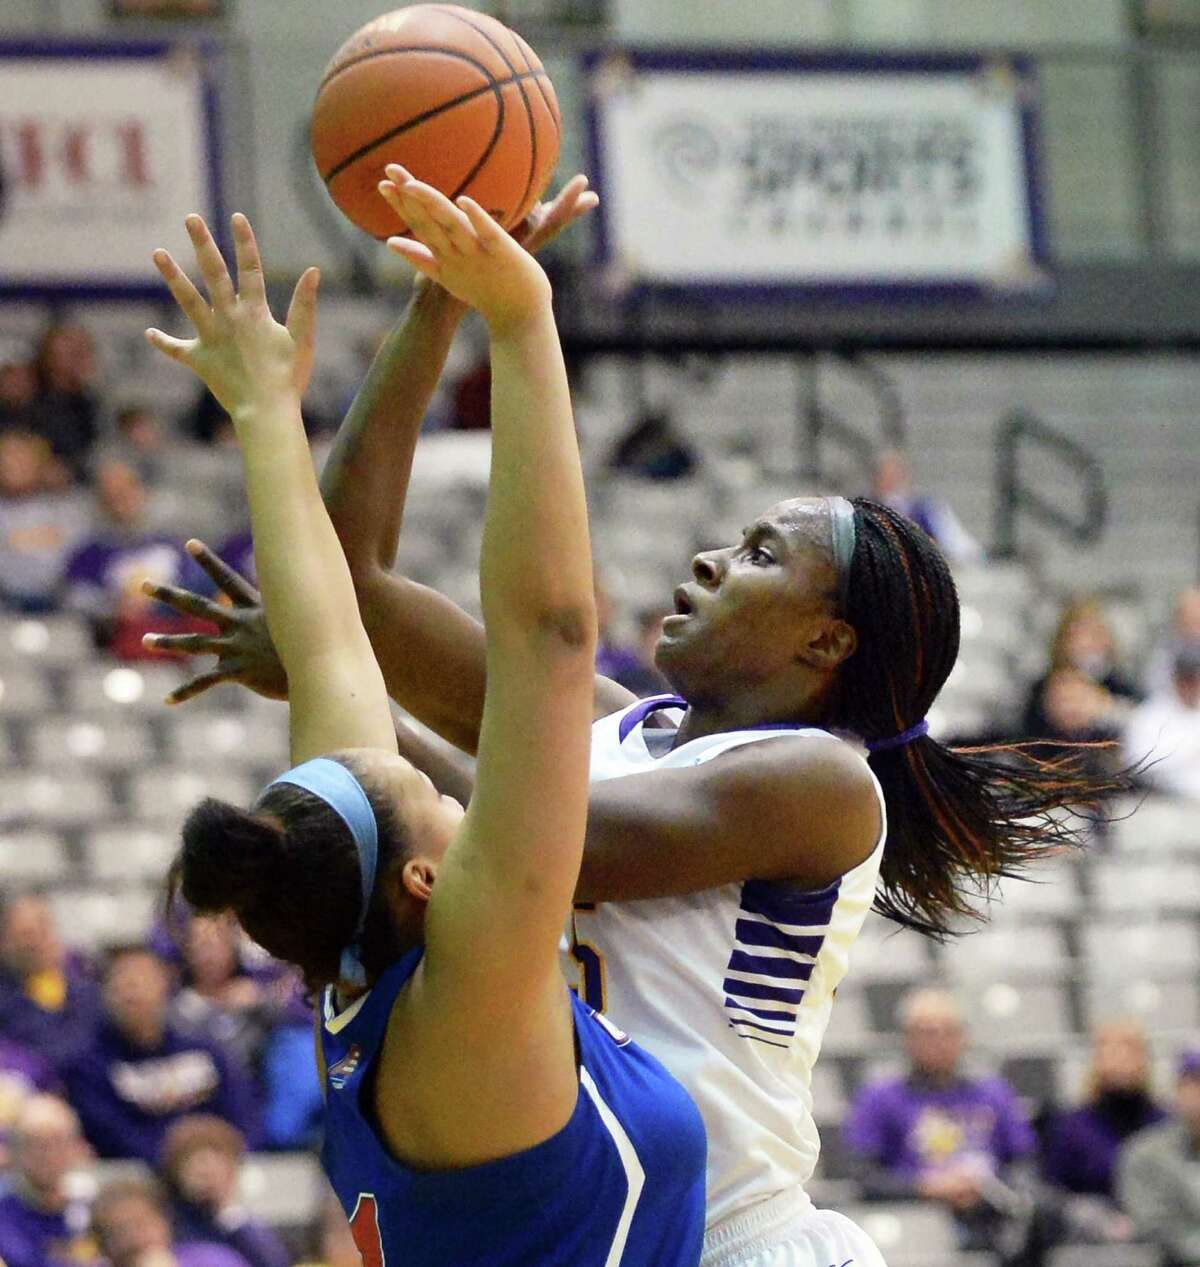 UAlbany's #25 Shereesha Richards, right, gets a shot past UMass-Lowell's #1 Kayla Gibbs during Saturday's game at the SEFCU Arena Feb. 7, 2015, in Albany, NY. (John Carl D'Annibale / Times Union)